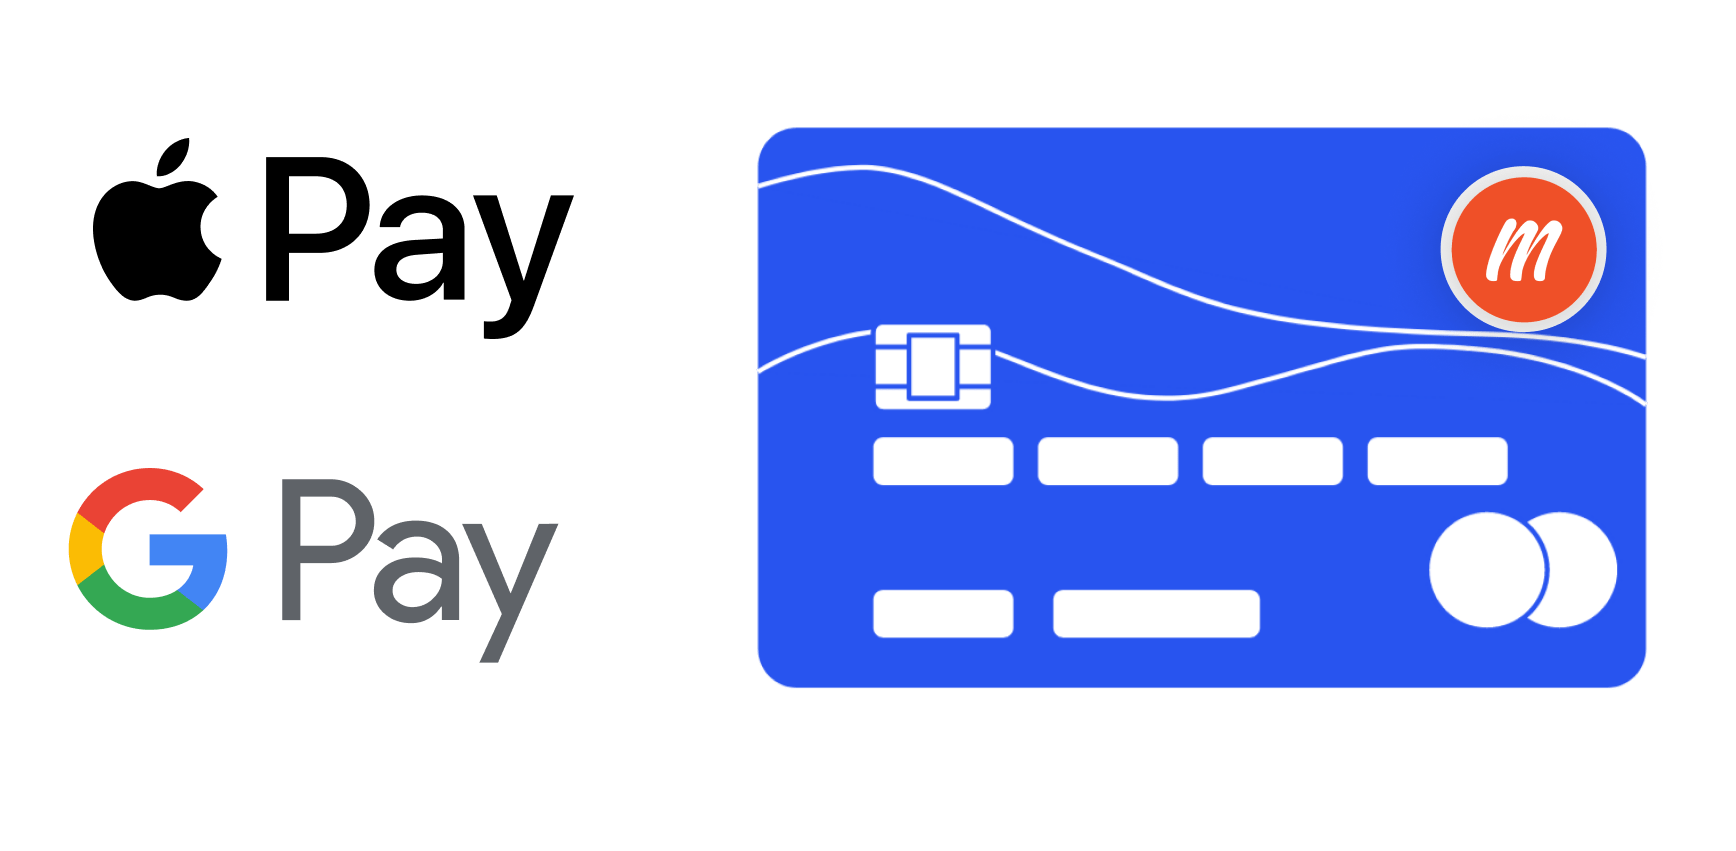 Apple Pay Logo, Google Pay Logo, Illustrated credit card with Memberful logo on it